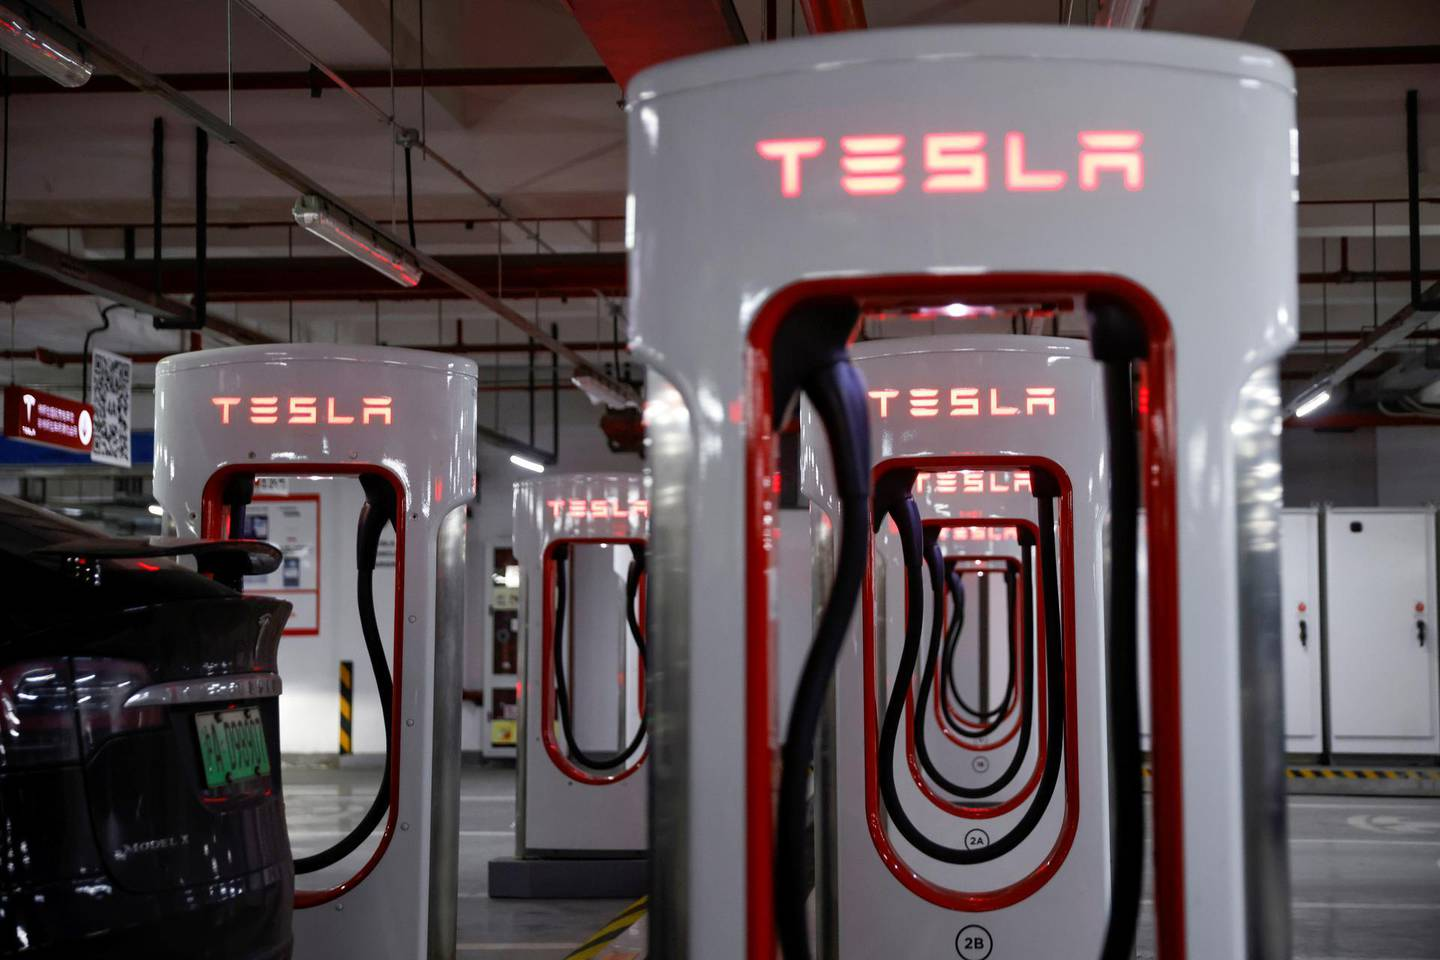 FILE PHOTO: Tesla charging stations are pictured in a parking lot in Shanghai, China March 13, 2021. Picture taken March 13, 2021. REUTERS/Aly Song/File Photo